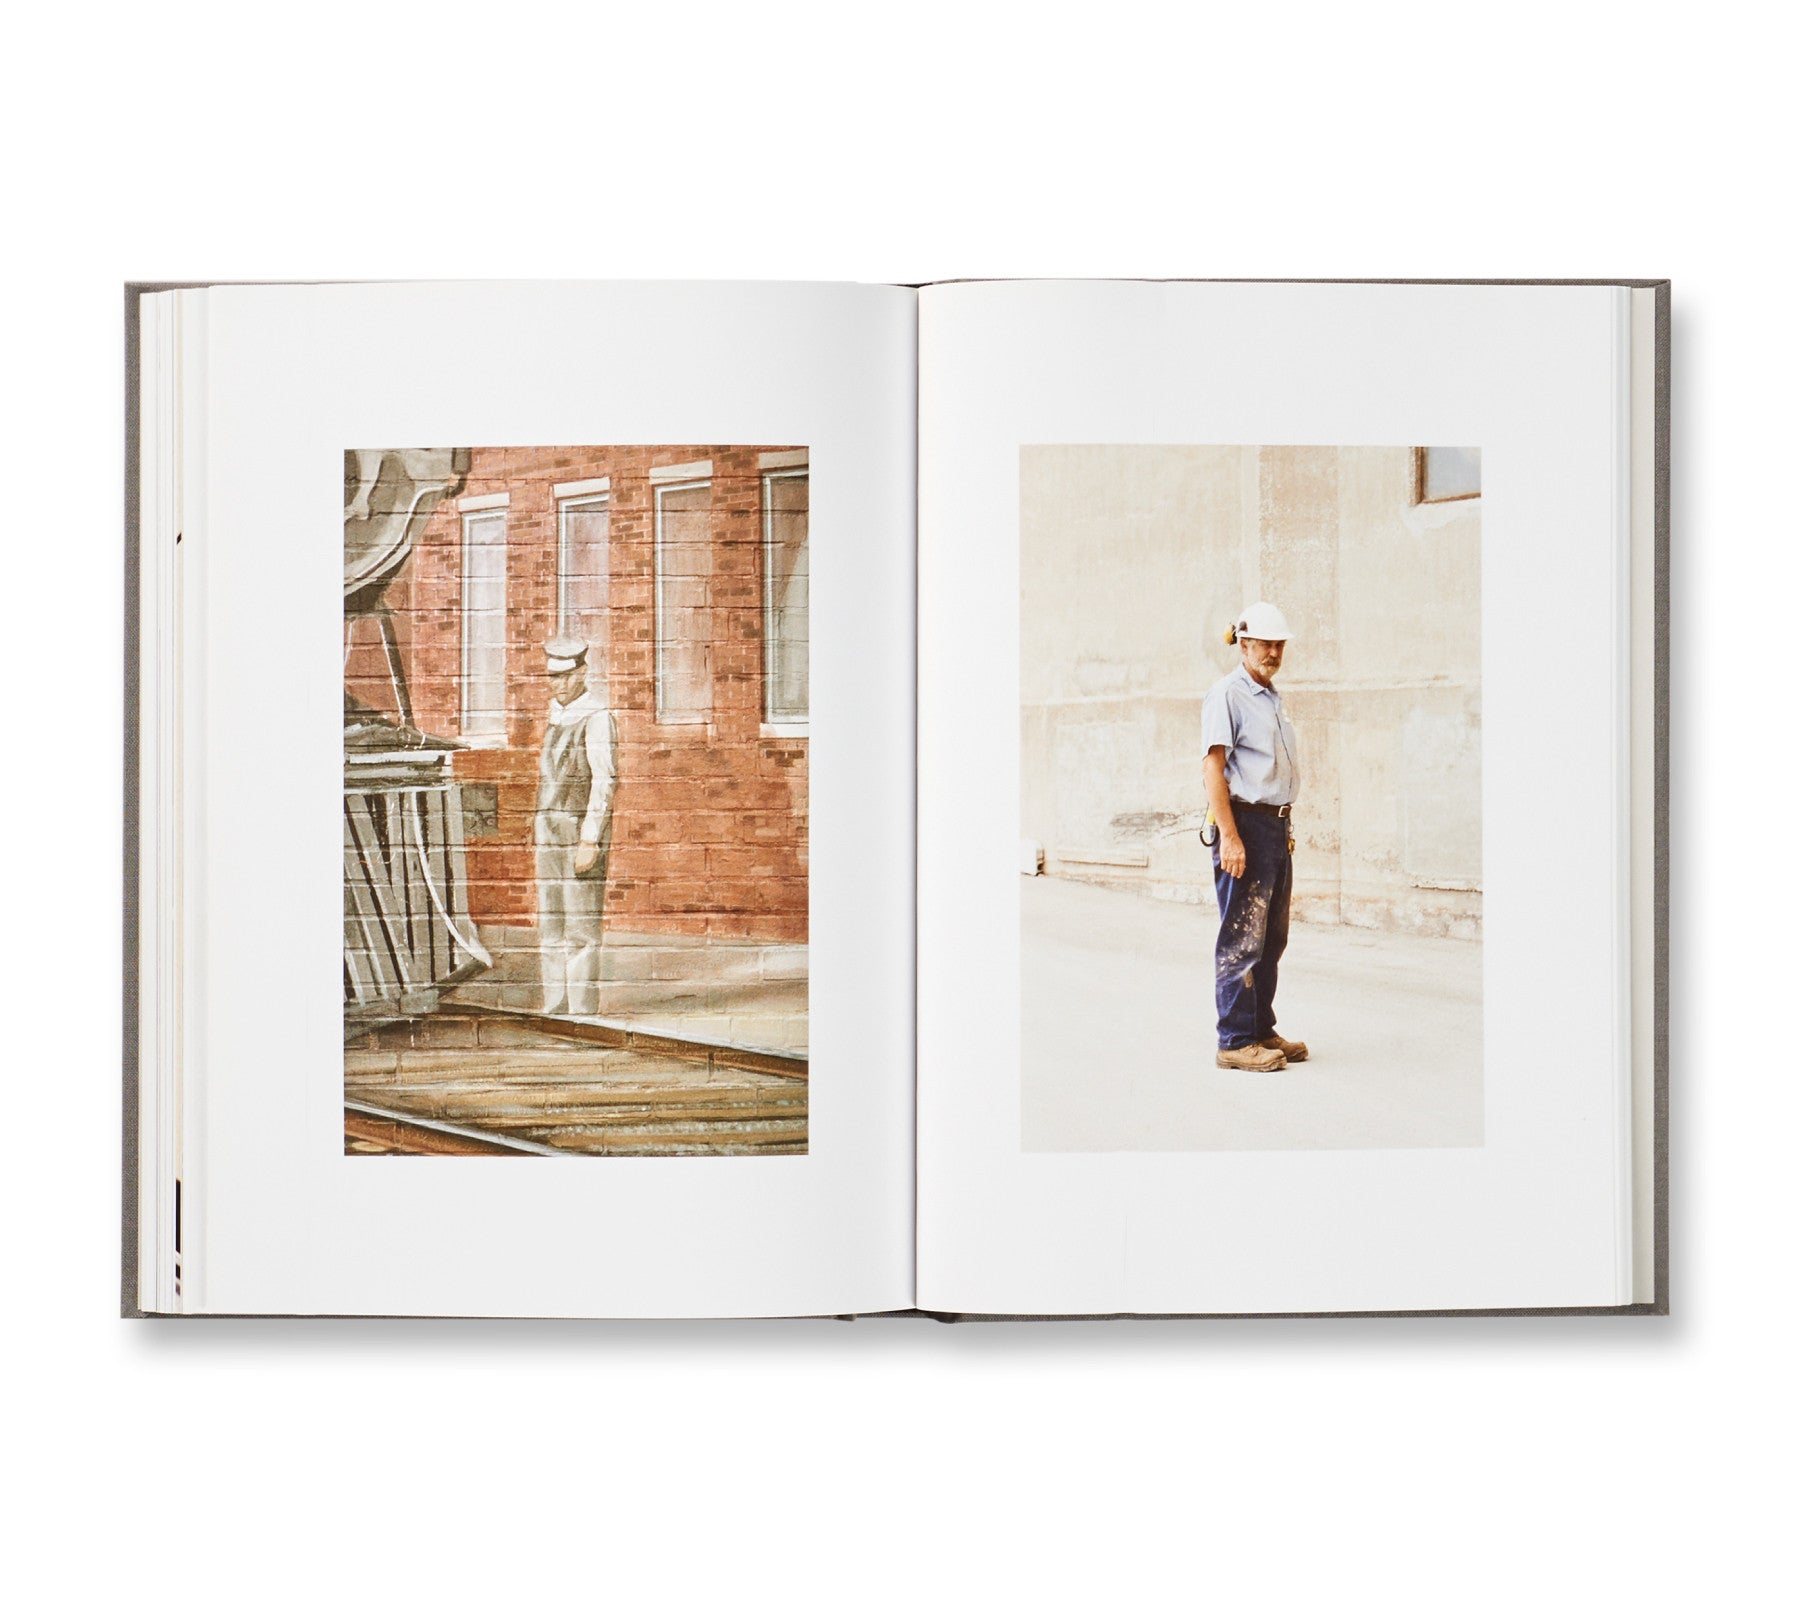 BLISNER, IL by Daniel Shea [SIGNED]